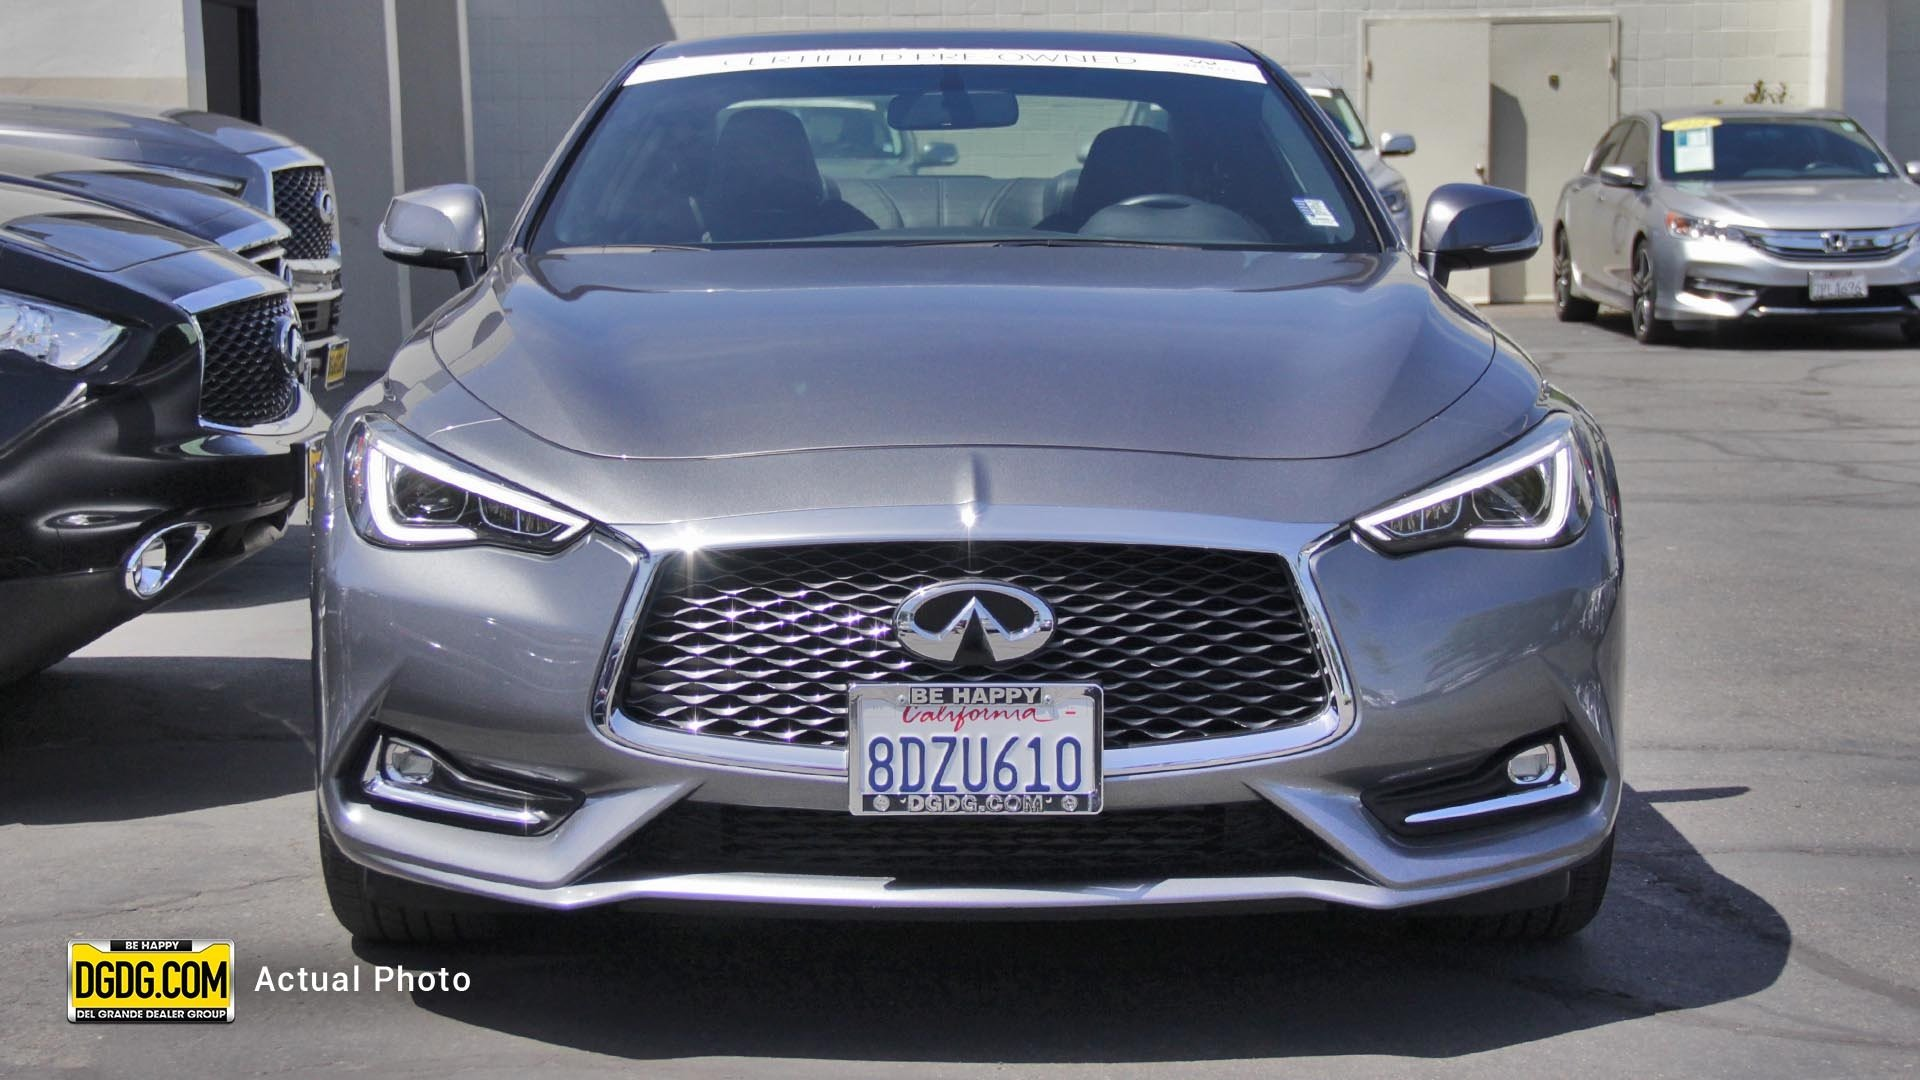 Certified Pre-Owned 2018 INFINITI Q60 2.0t PURE